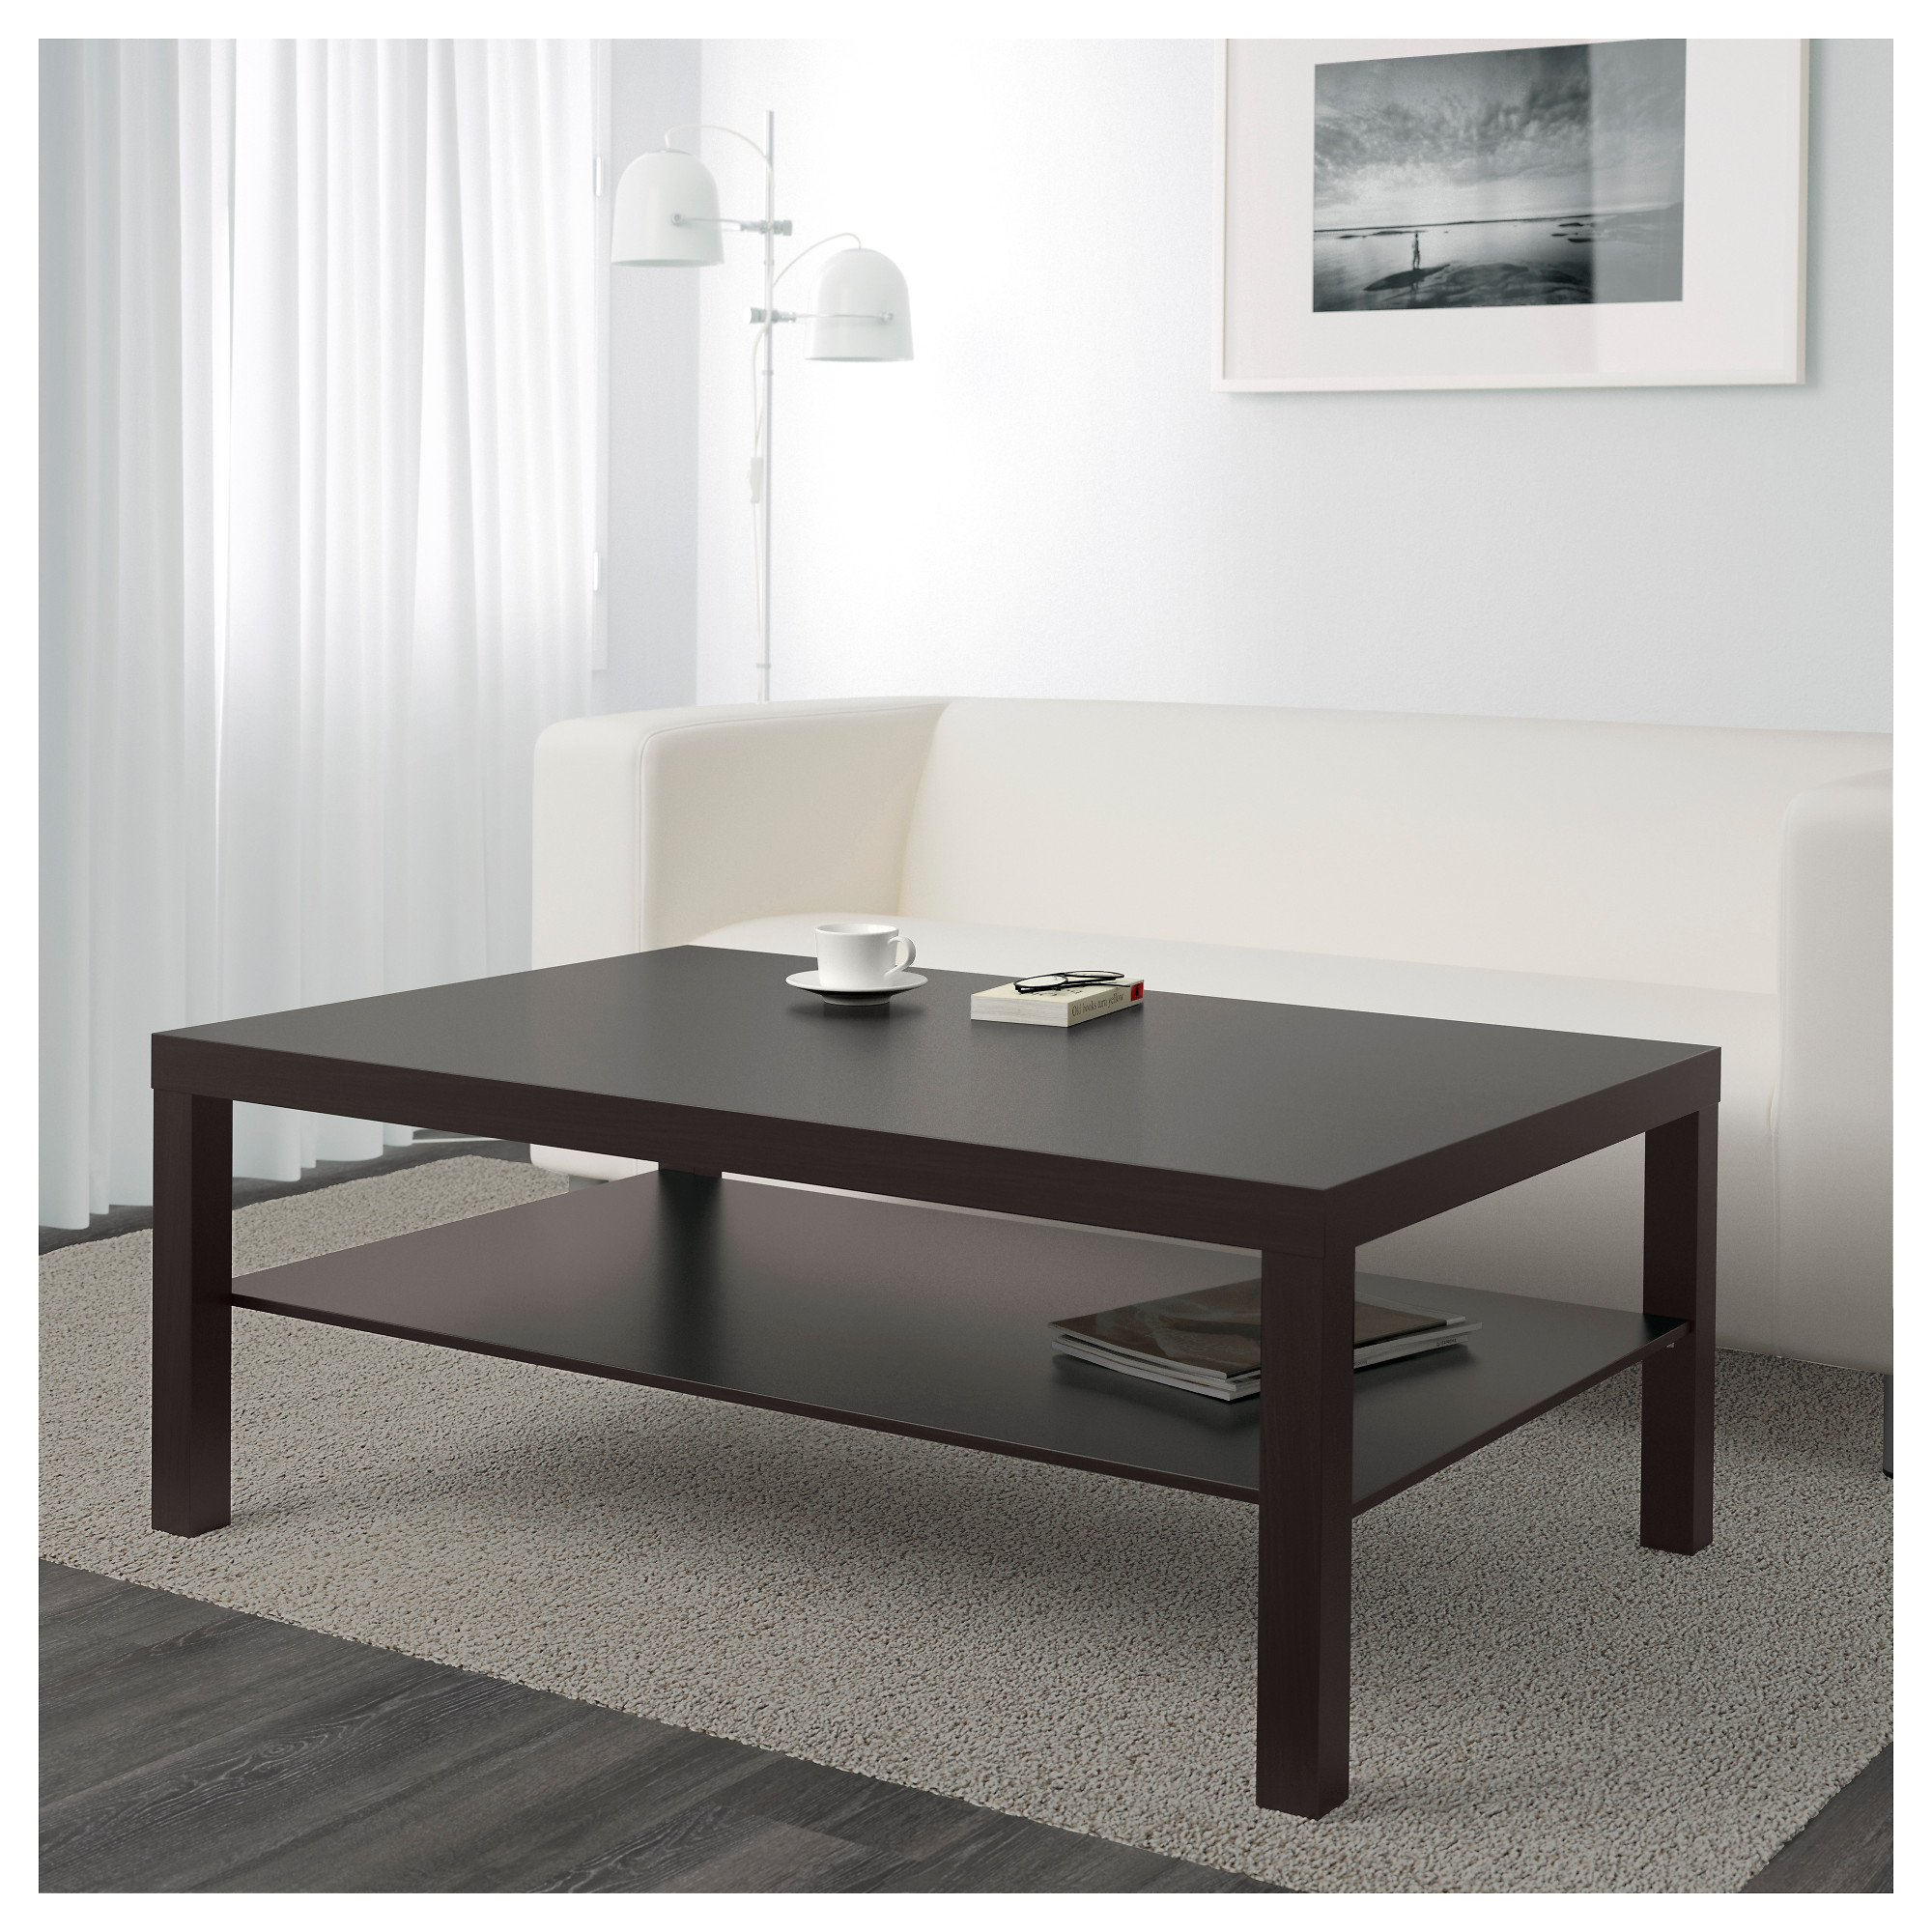 Lift Top Coffee Table With Storage Ikea